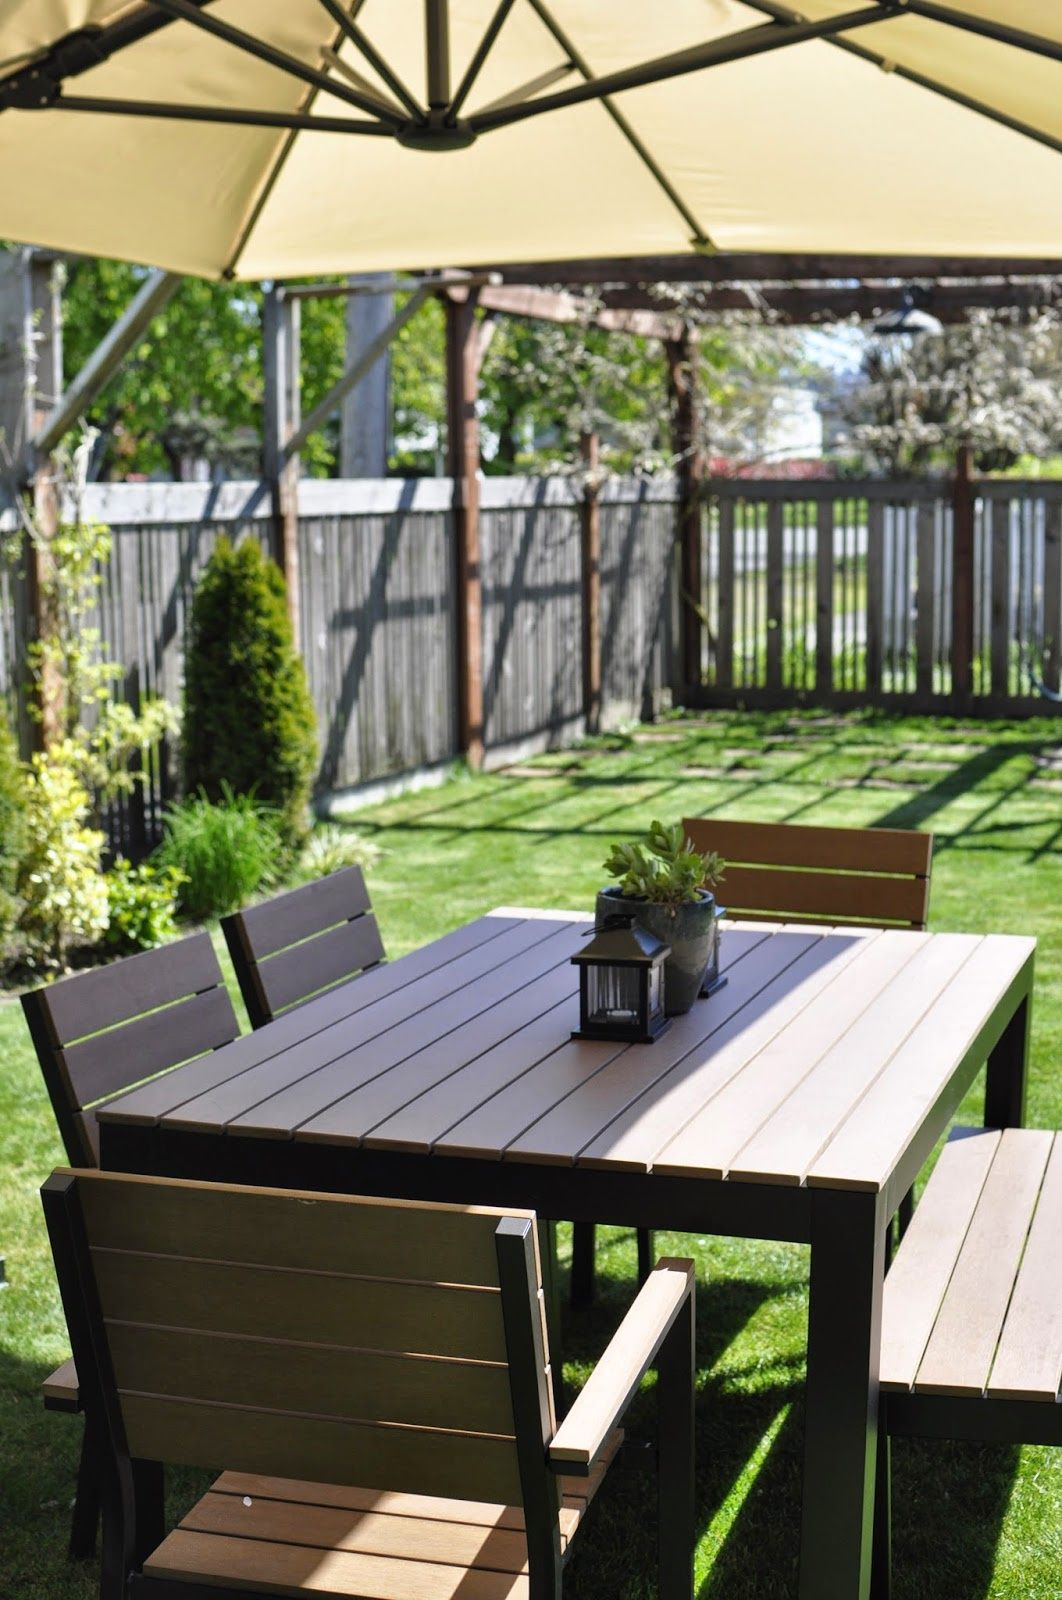 Pin By Annora On Home Interior Ikea Outdoor Ikea Garden Furniture